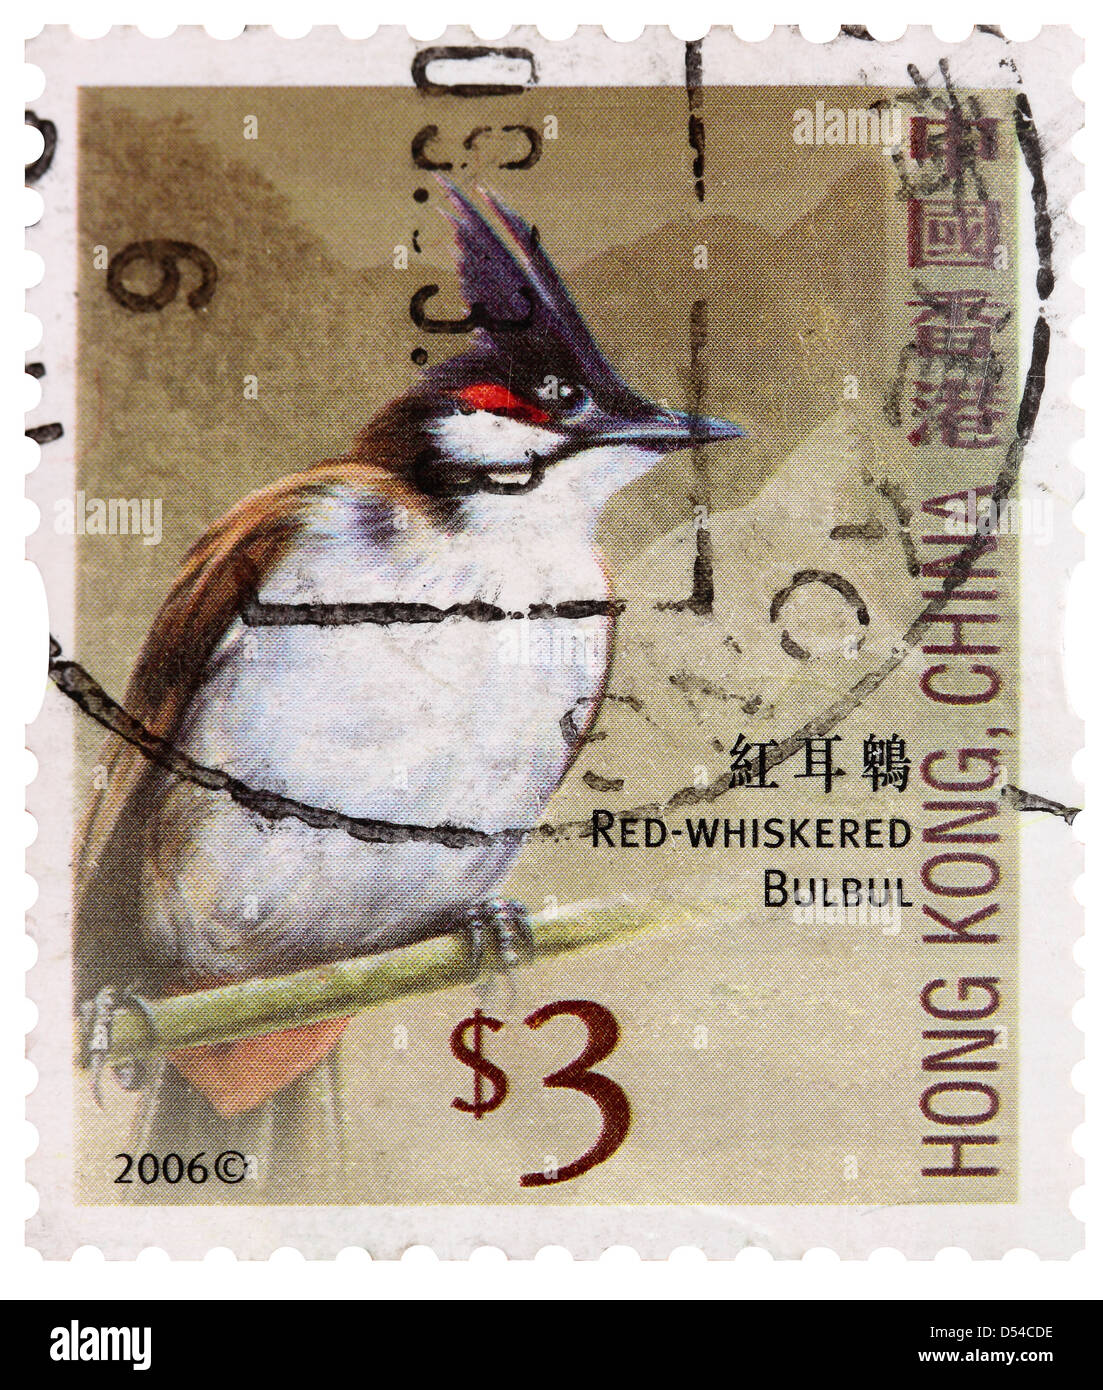 Used Three Hong Kong Dollar Postage Stamp - Red-Whiskered Bulbul - Stock Image